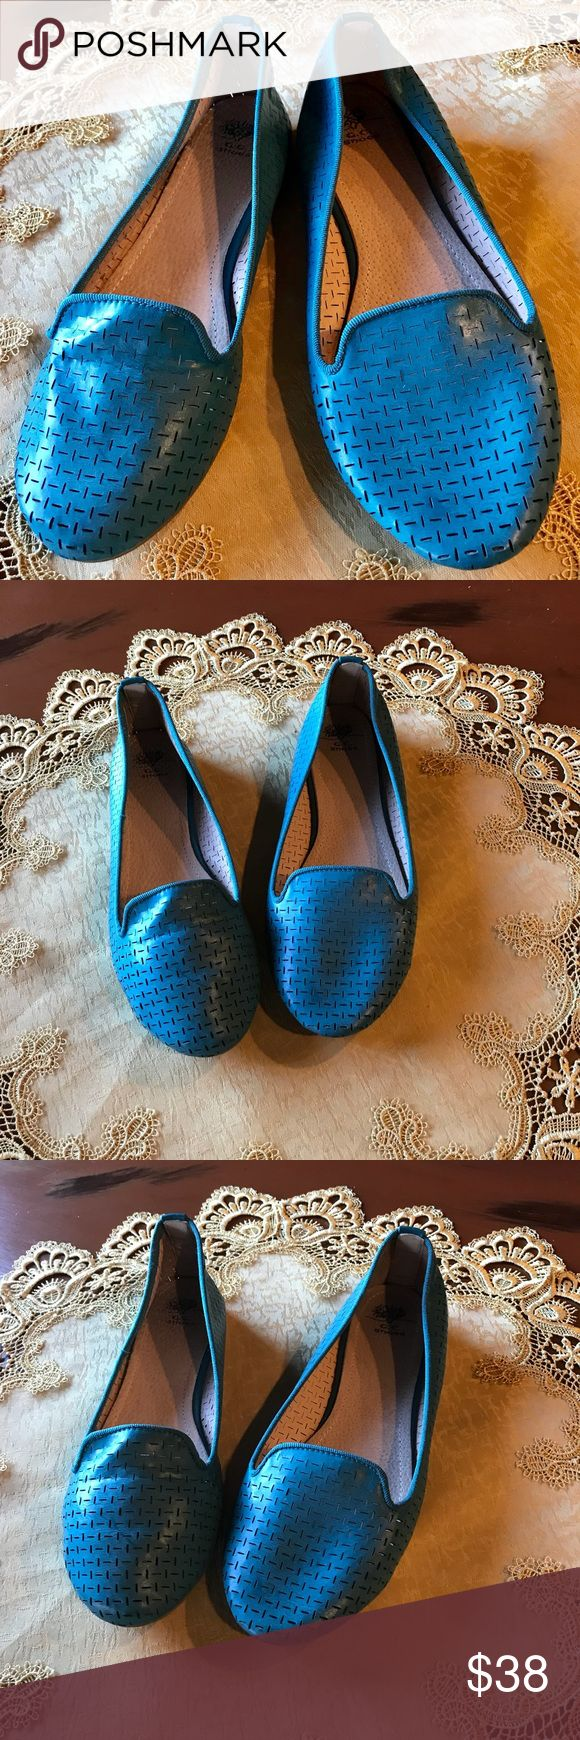 G.C. Shoe - Teal Flat - Size 9 G.C. Shoe - Teal Flat - Size 9. Worn one time - Sticker still on bottom of one shoe.  Can be worn for dress or casual.  Purchased at DSW. Nice condition. G.C. Shoes Shoes Flats & Loafers